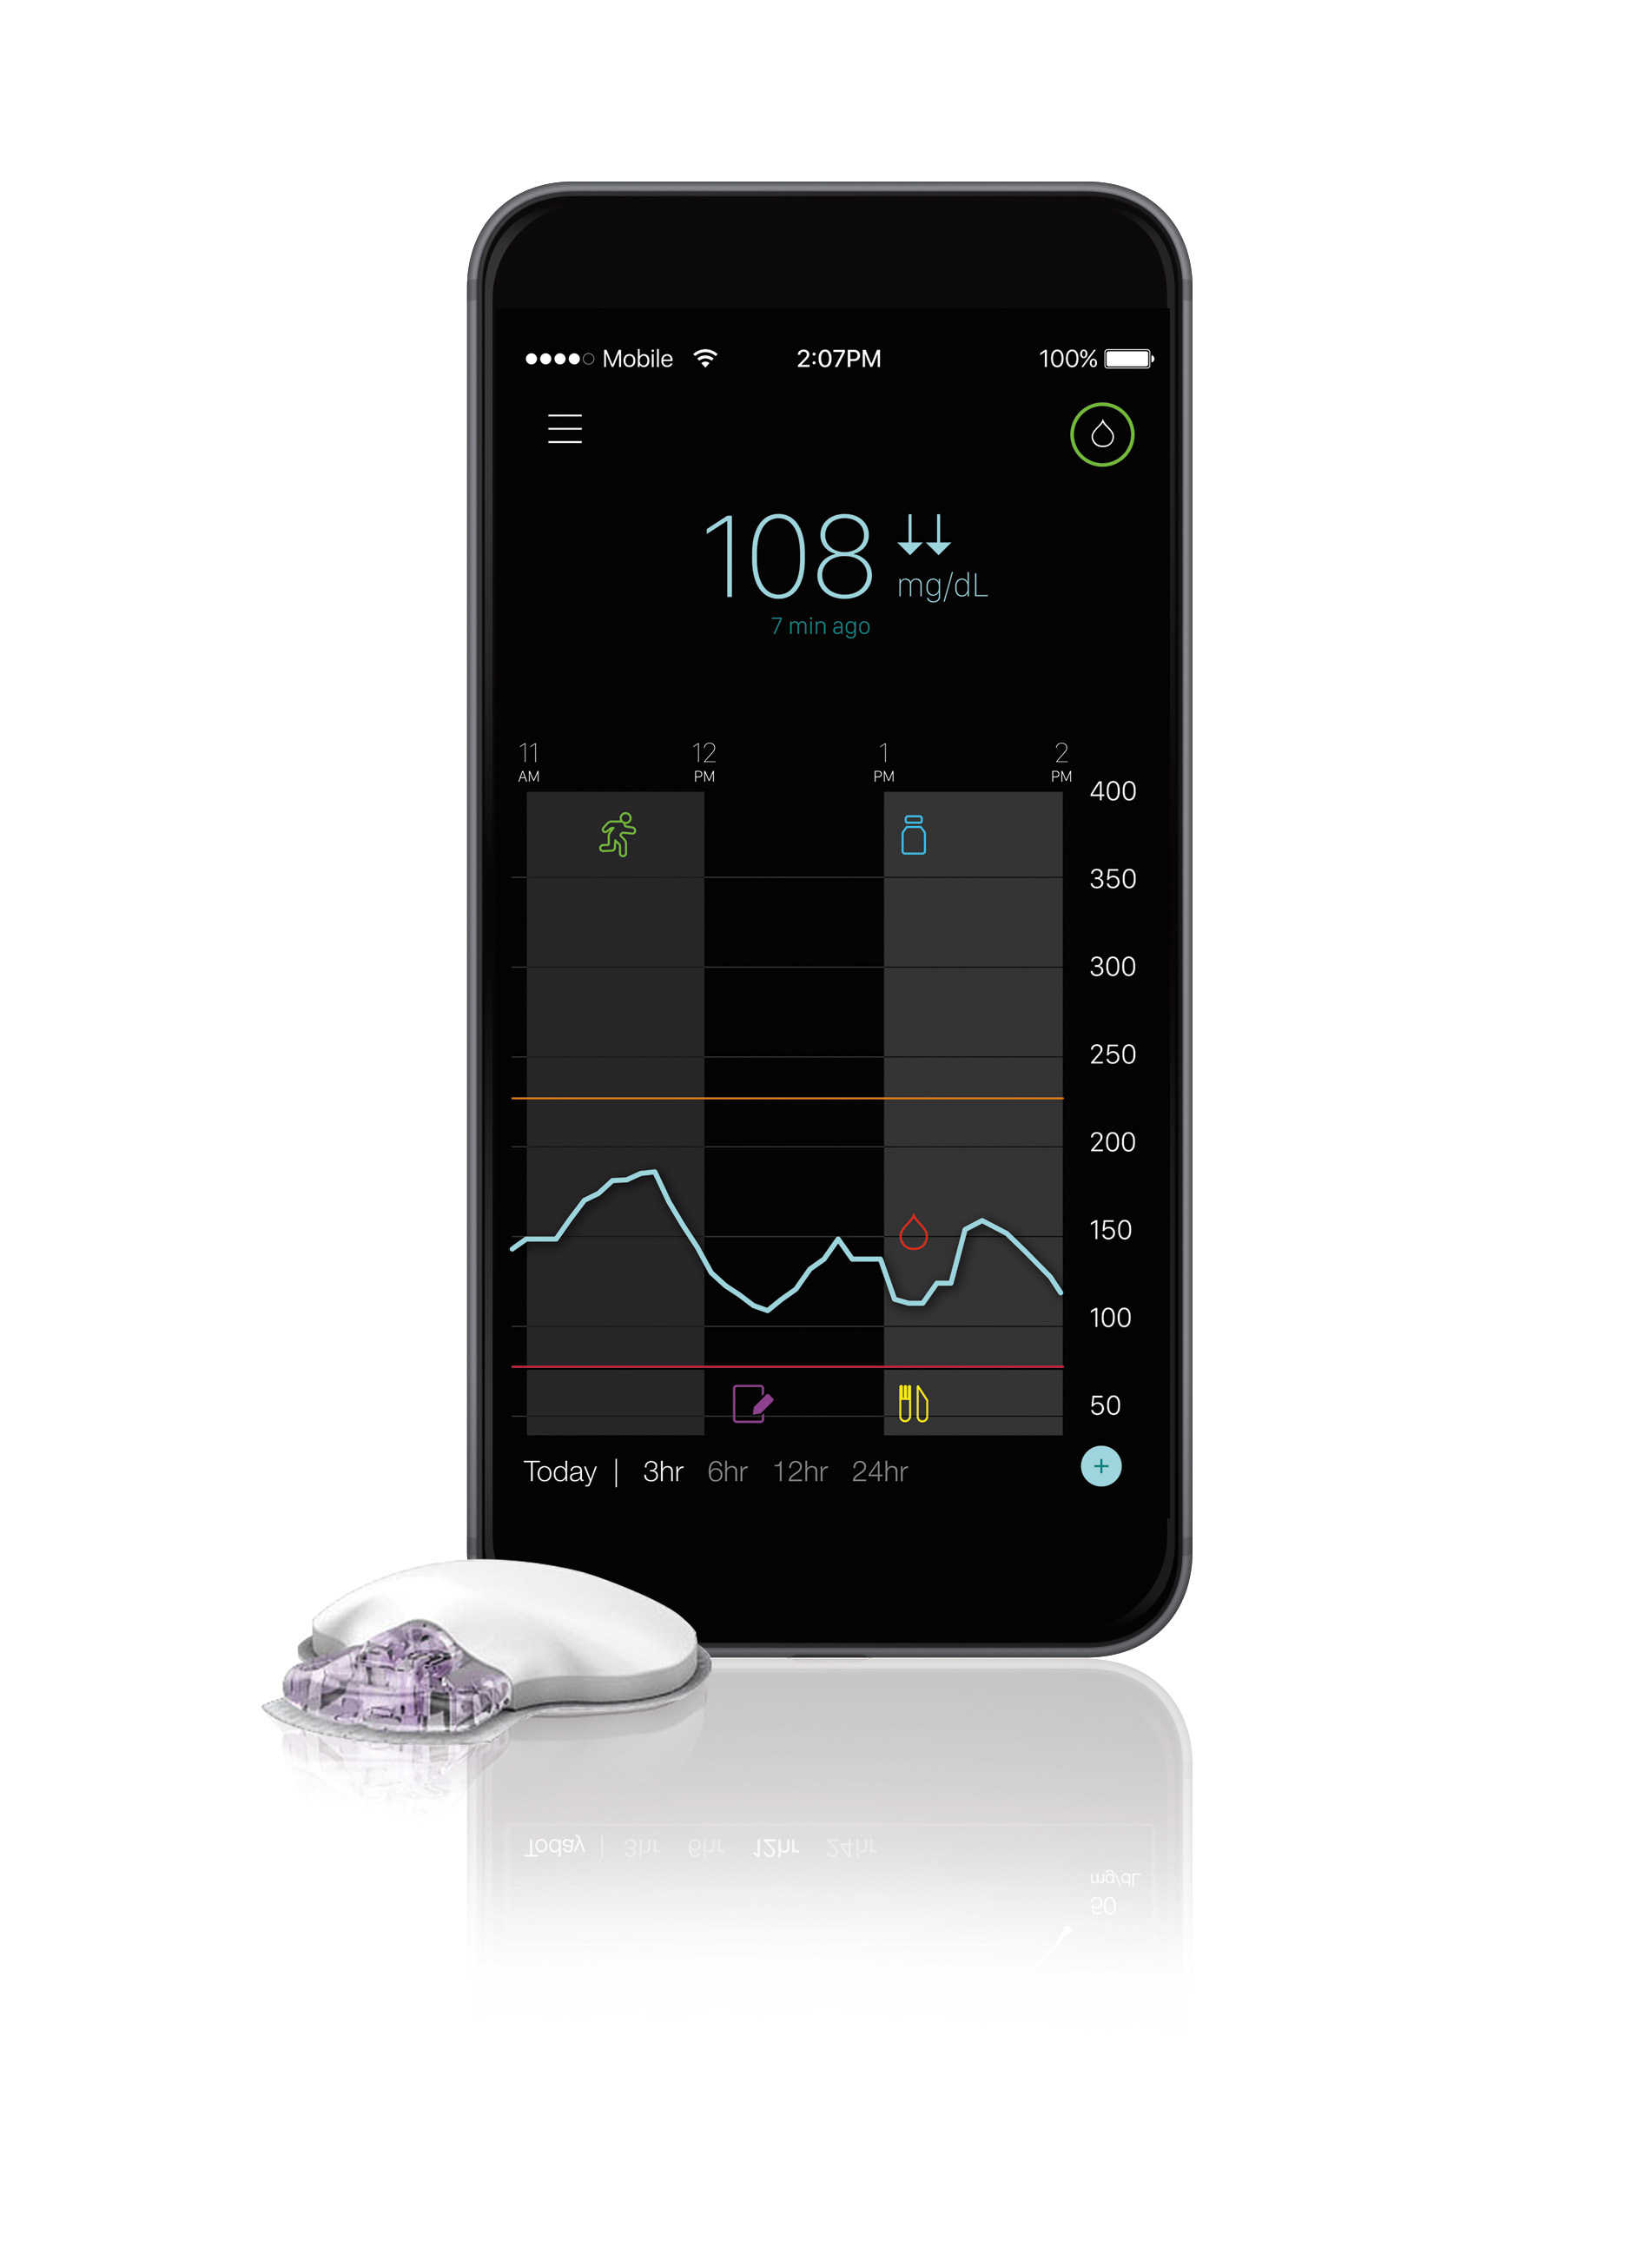 The Guardian™ Connect mobile continuous glucose monitoring (CGM) system for people with diabetes using insulin injection therapy is the first smartphone-enabled CGM system from Medtronic to receive CE Mark and further demonstrates the company's intent to provide solutions for people across the diabetes care continuum.